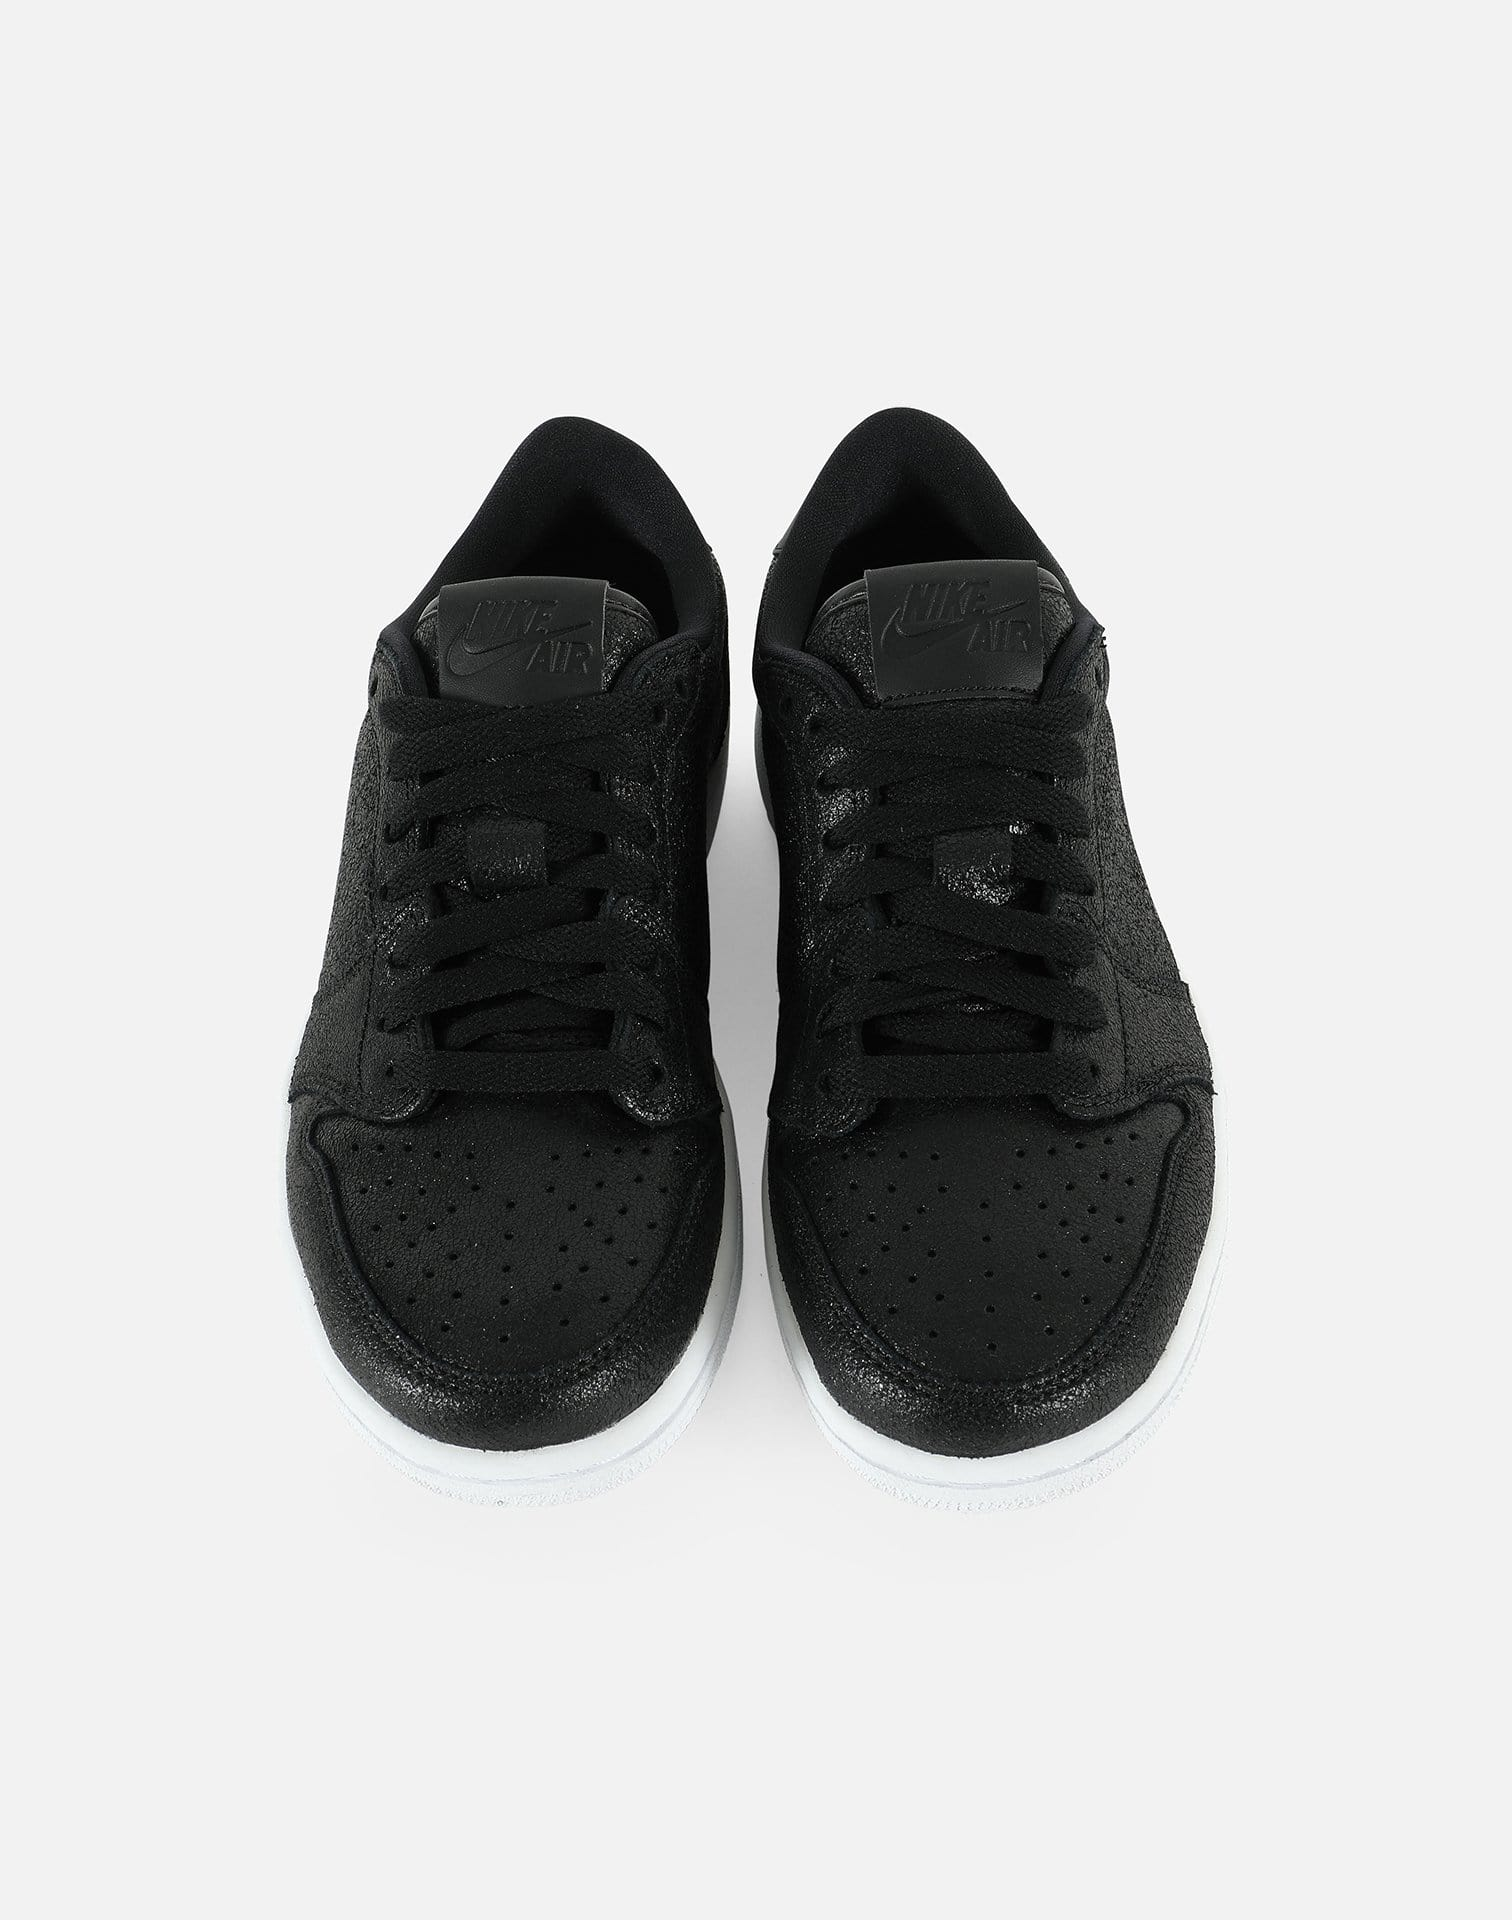 Jordan Women's Air Jordan Retro 1 Low